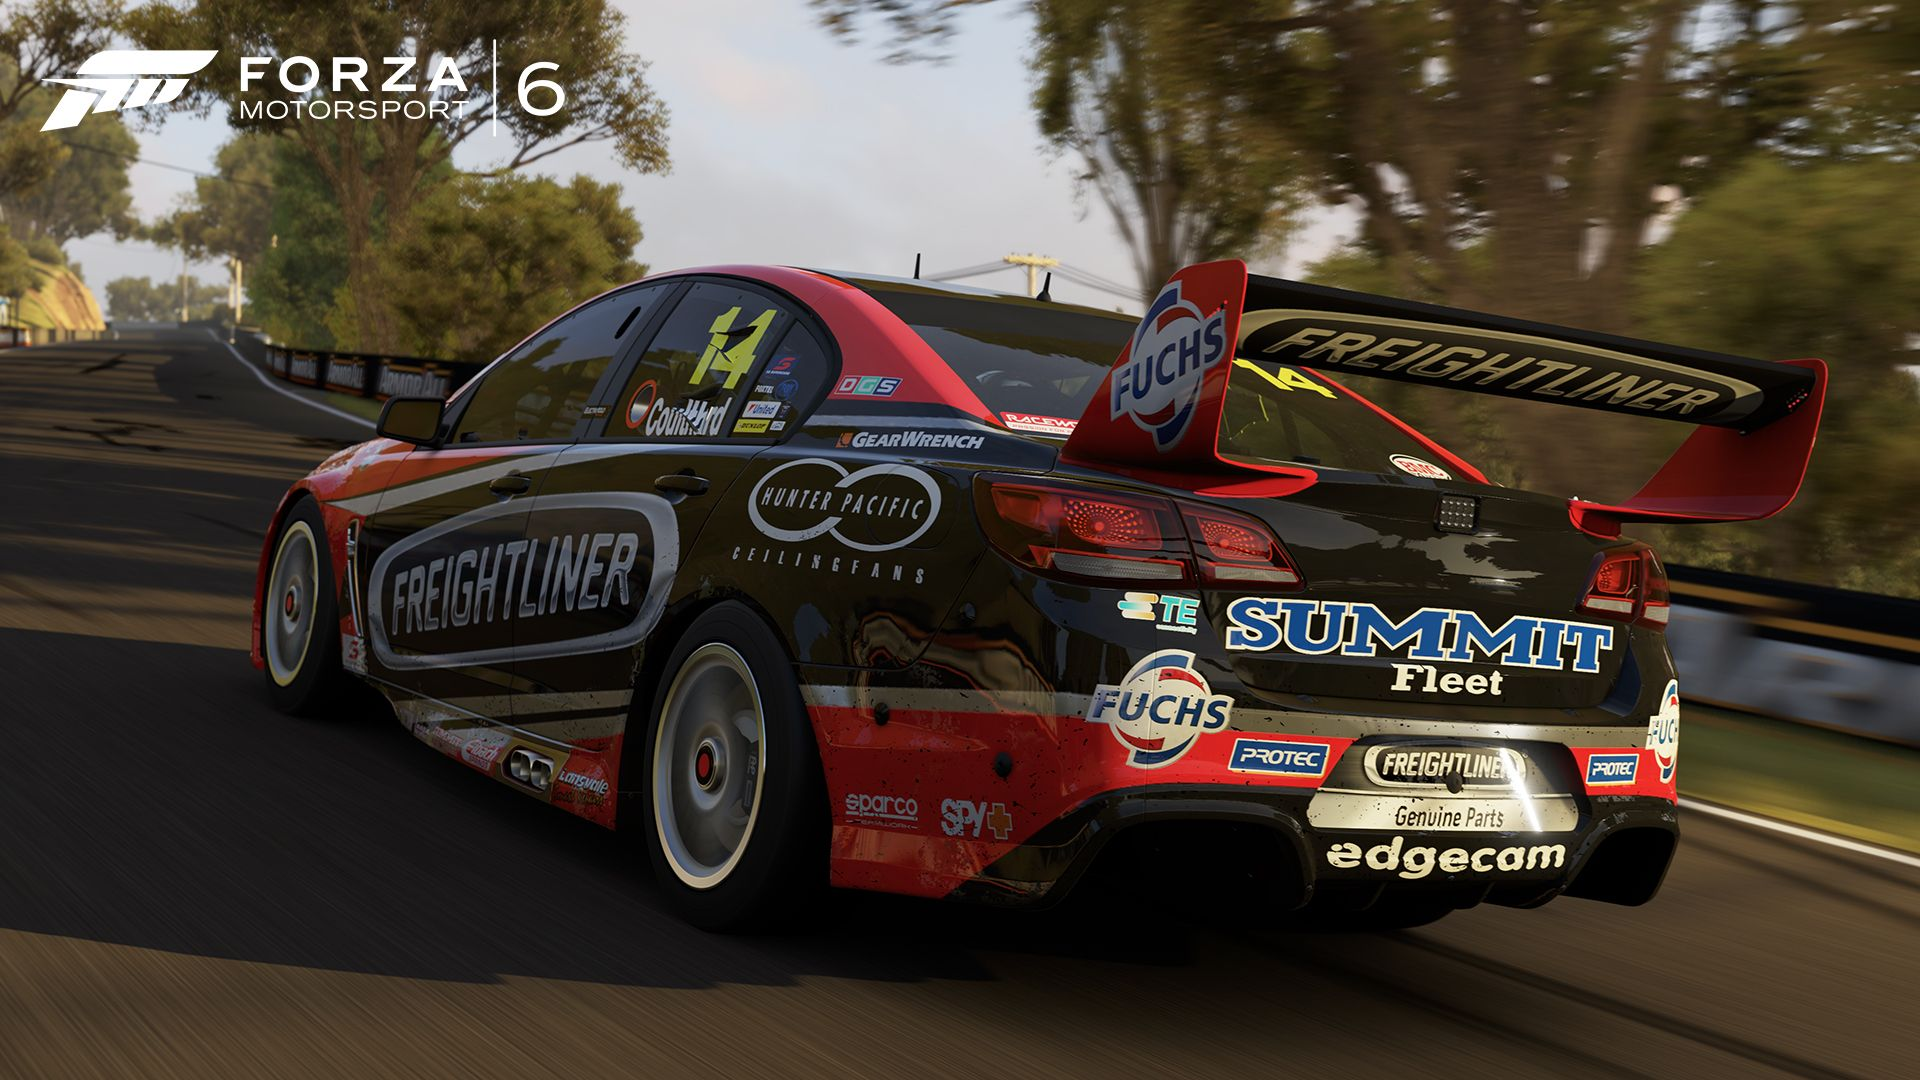 Race Down Under With V8 Supercars Australia In The Forza Motorsport 6 Garage Xbox Wire Forza Motorsport Forza Motorsport 6 V8 Supercars Australia